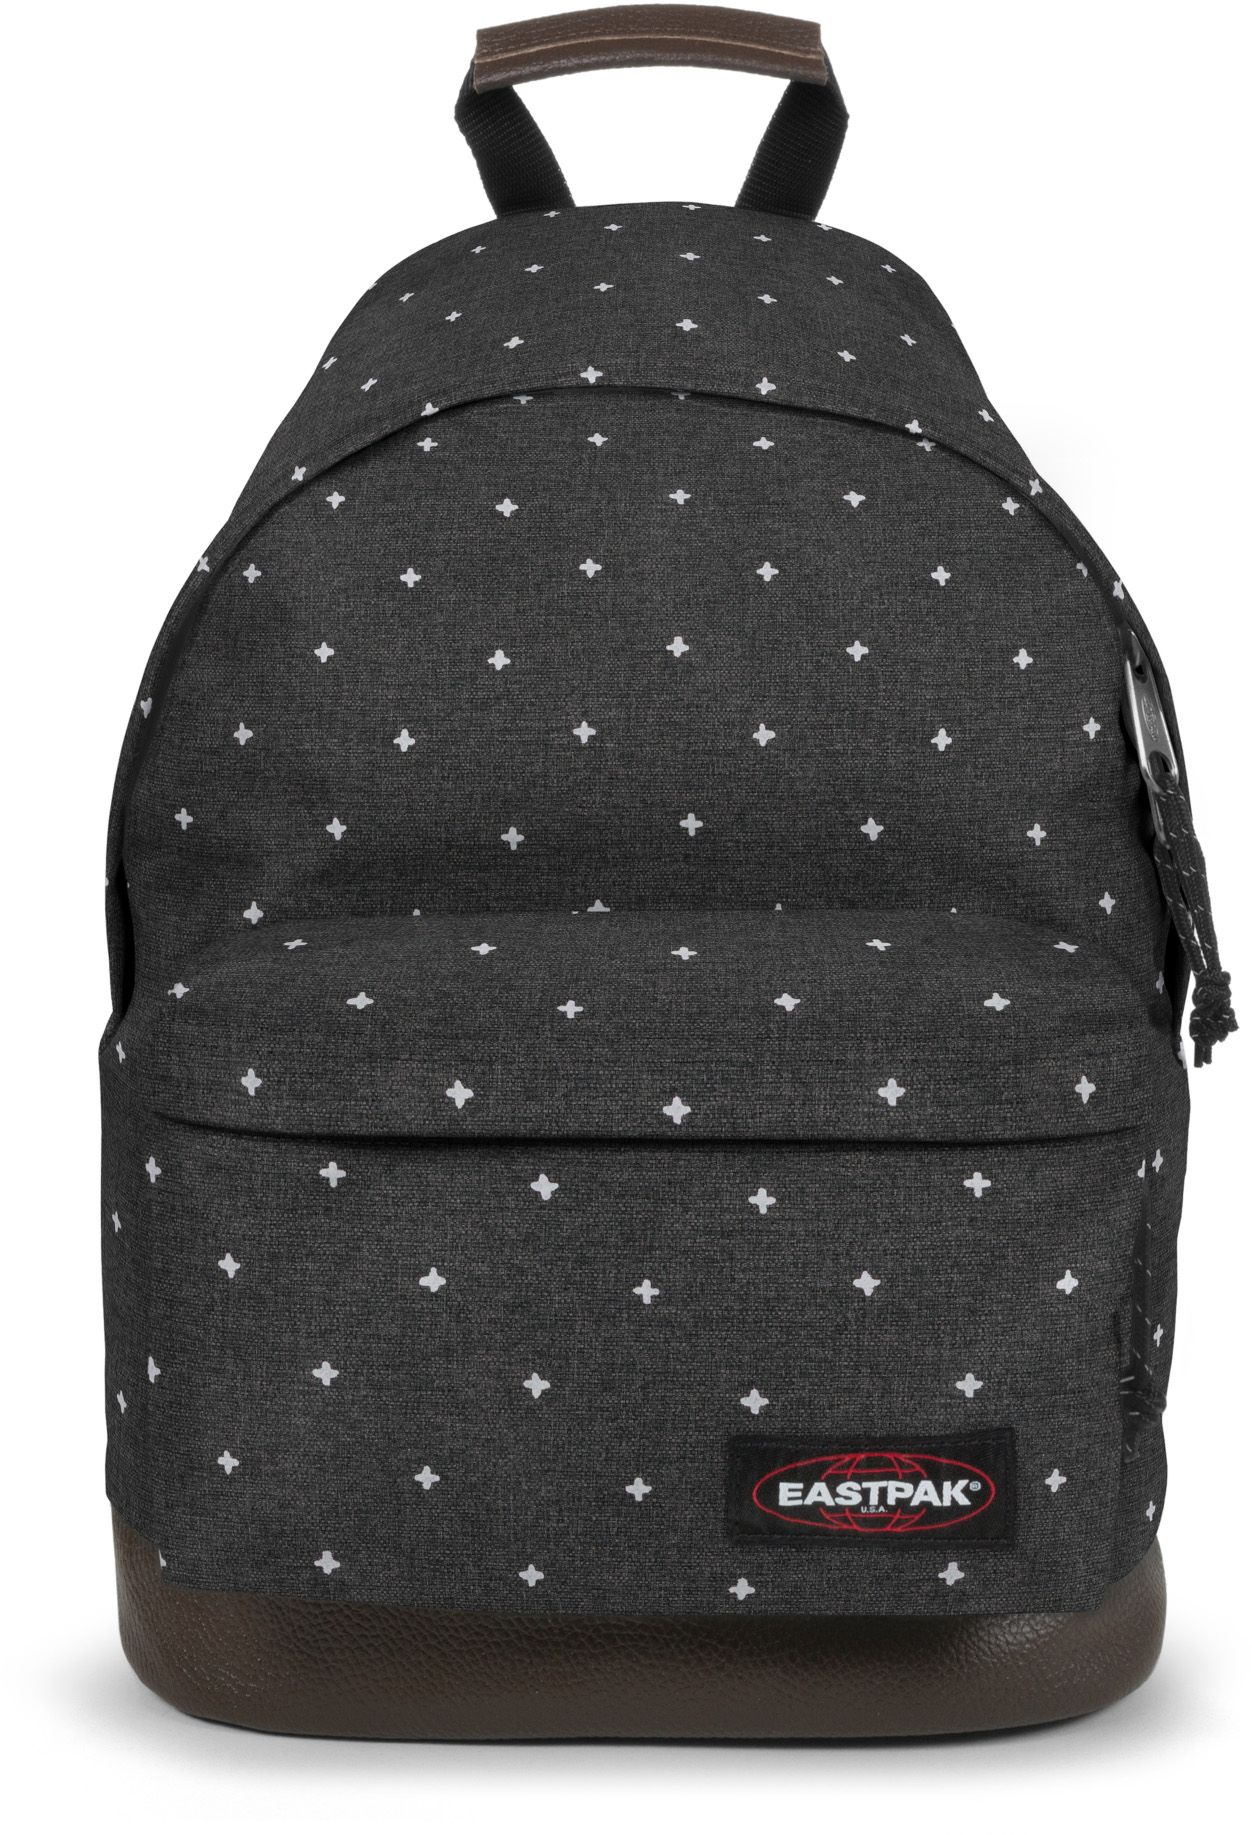 EASTPAK Eastpak Rucksack mit Laptopfach, »WYOMING white crosses«